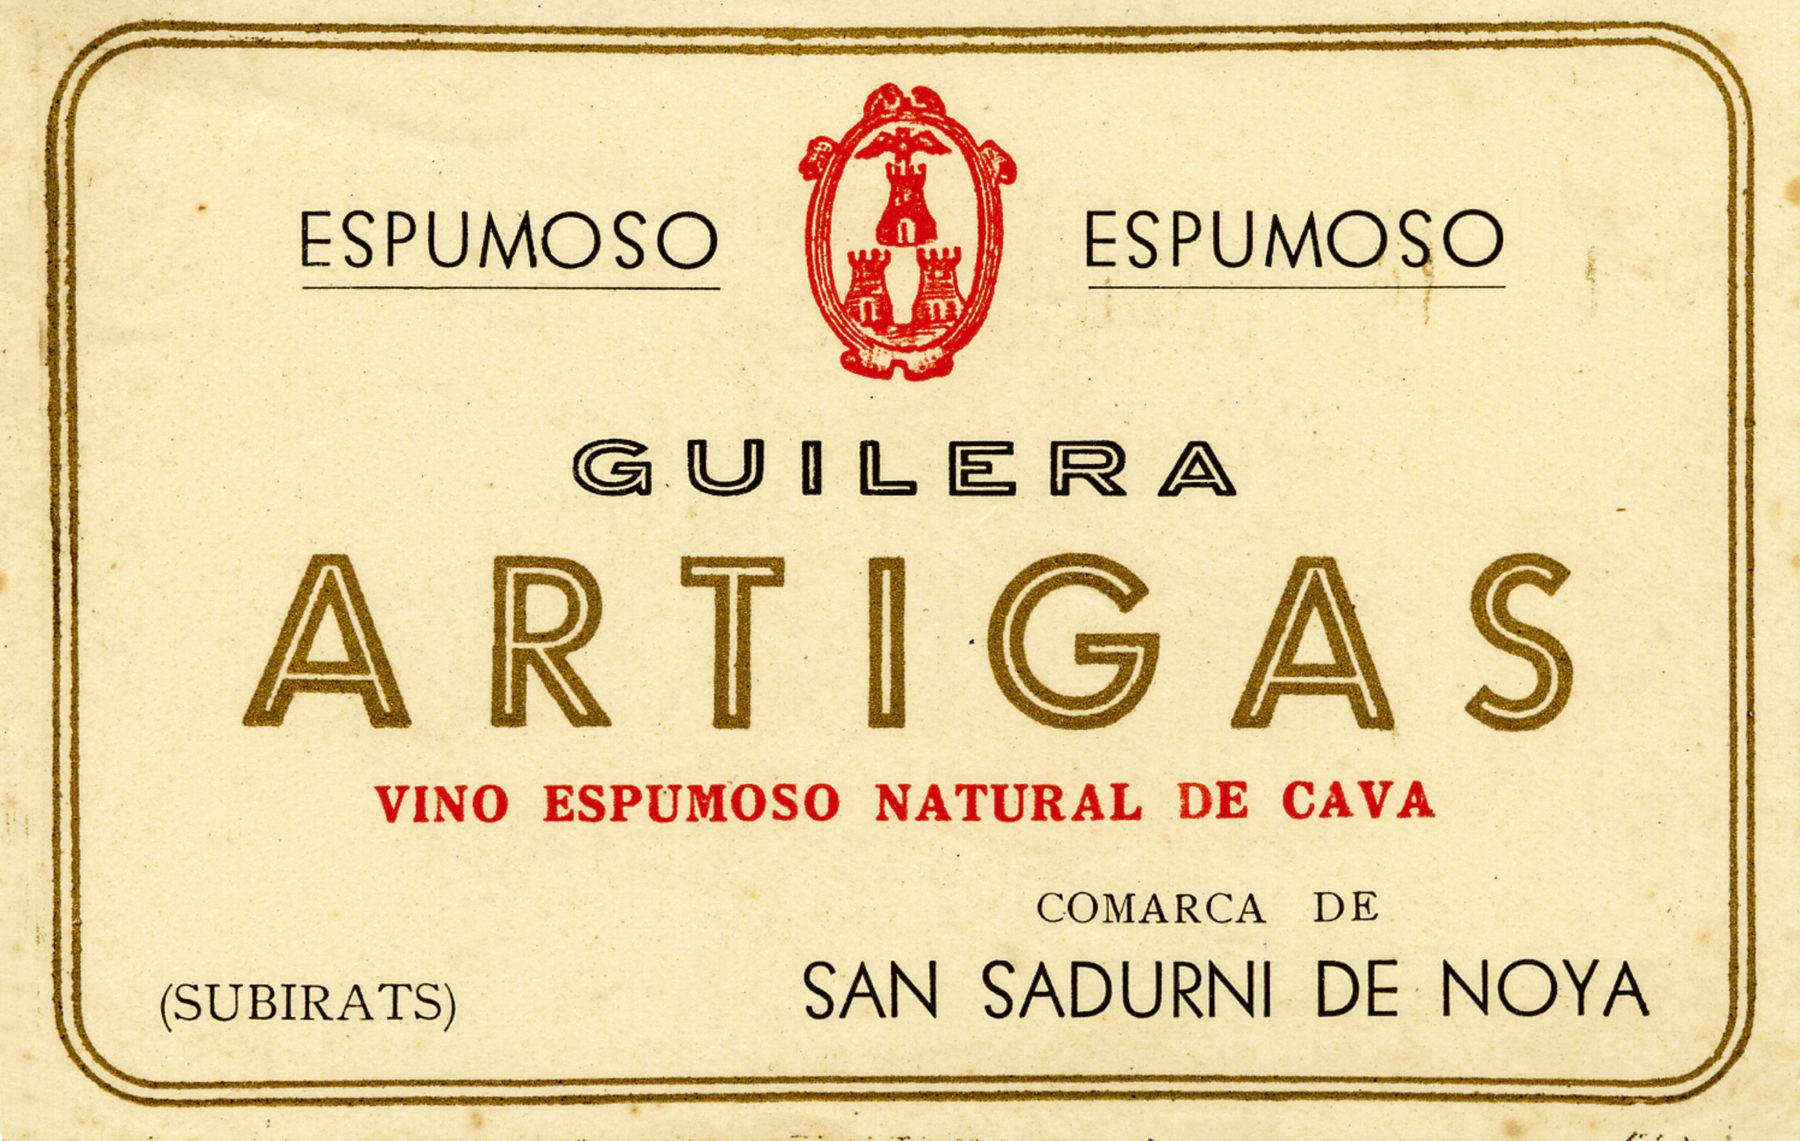 Original Guilera Artigas label